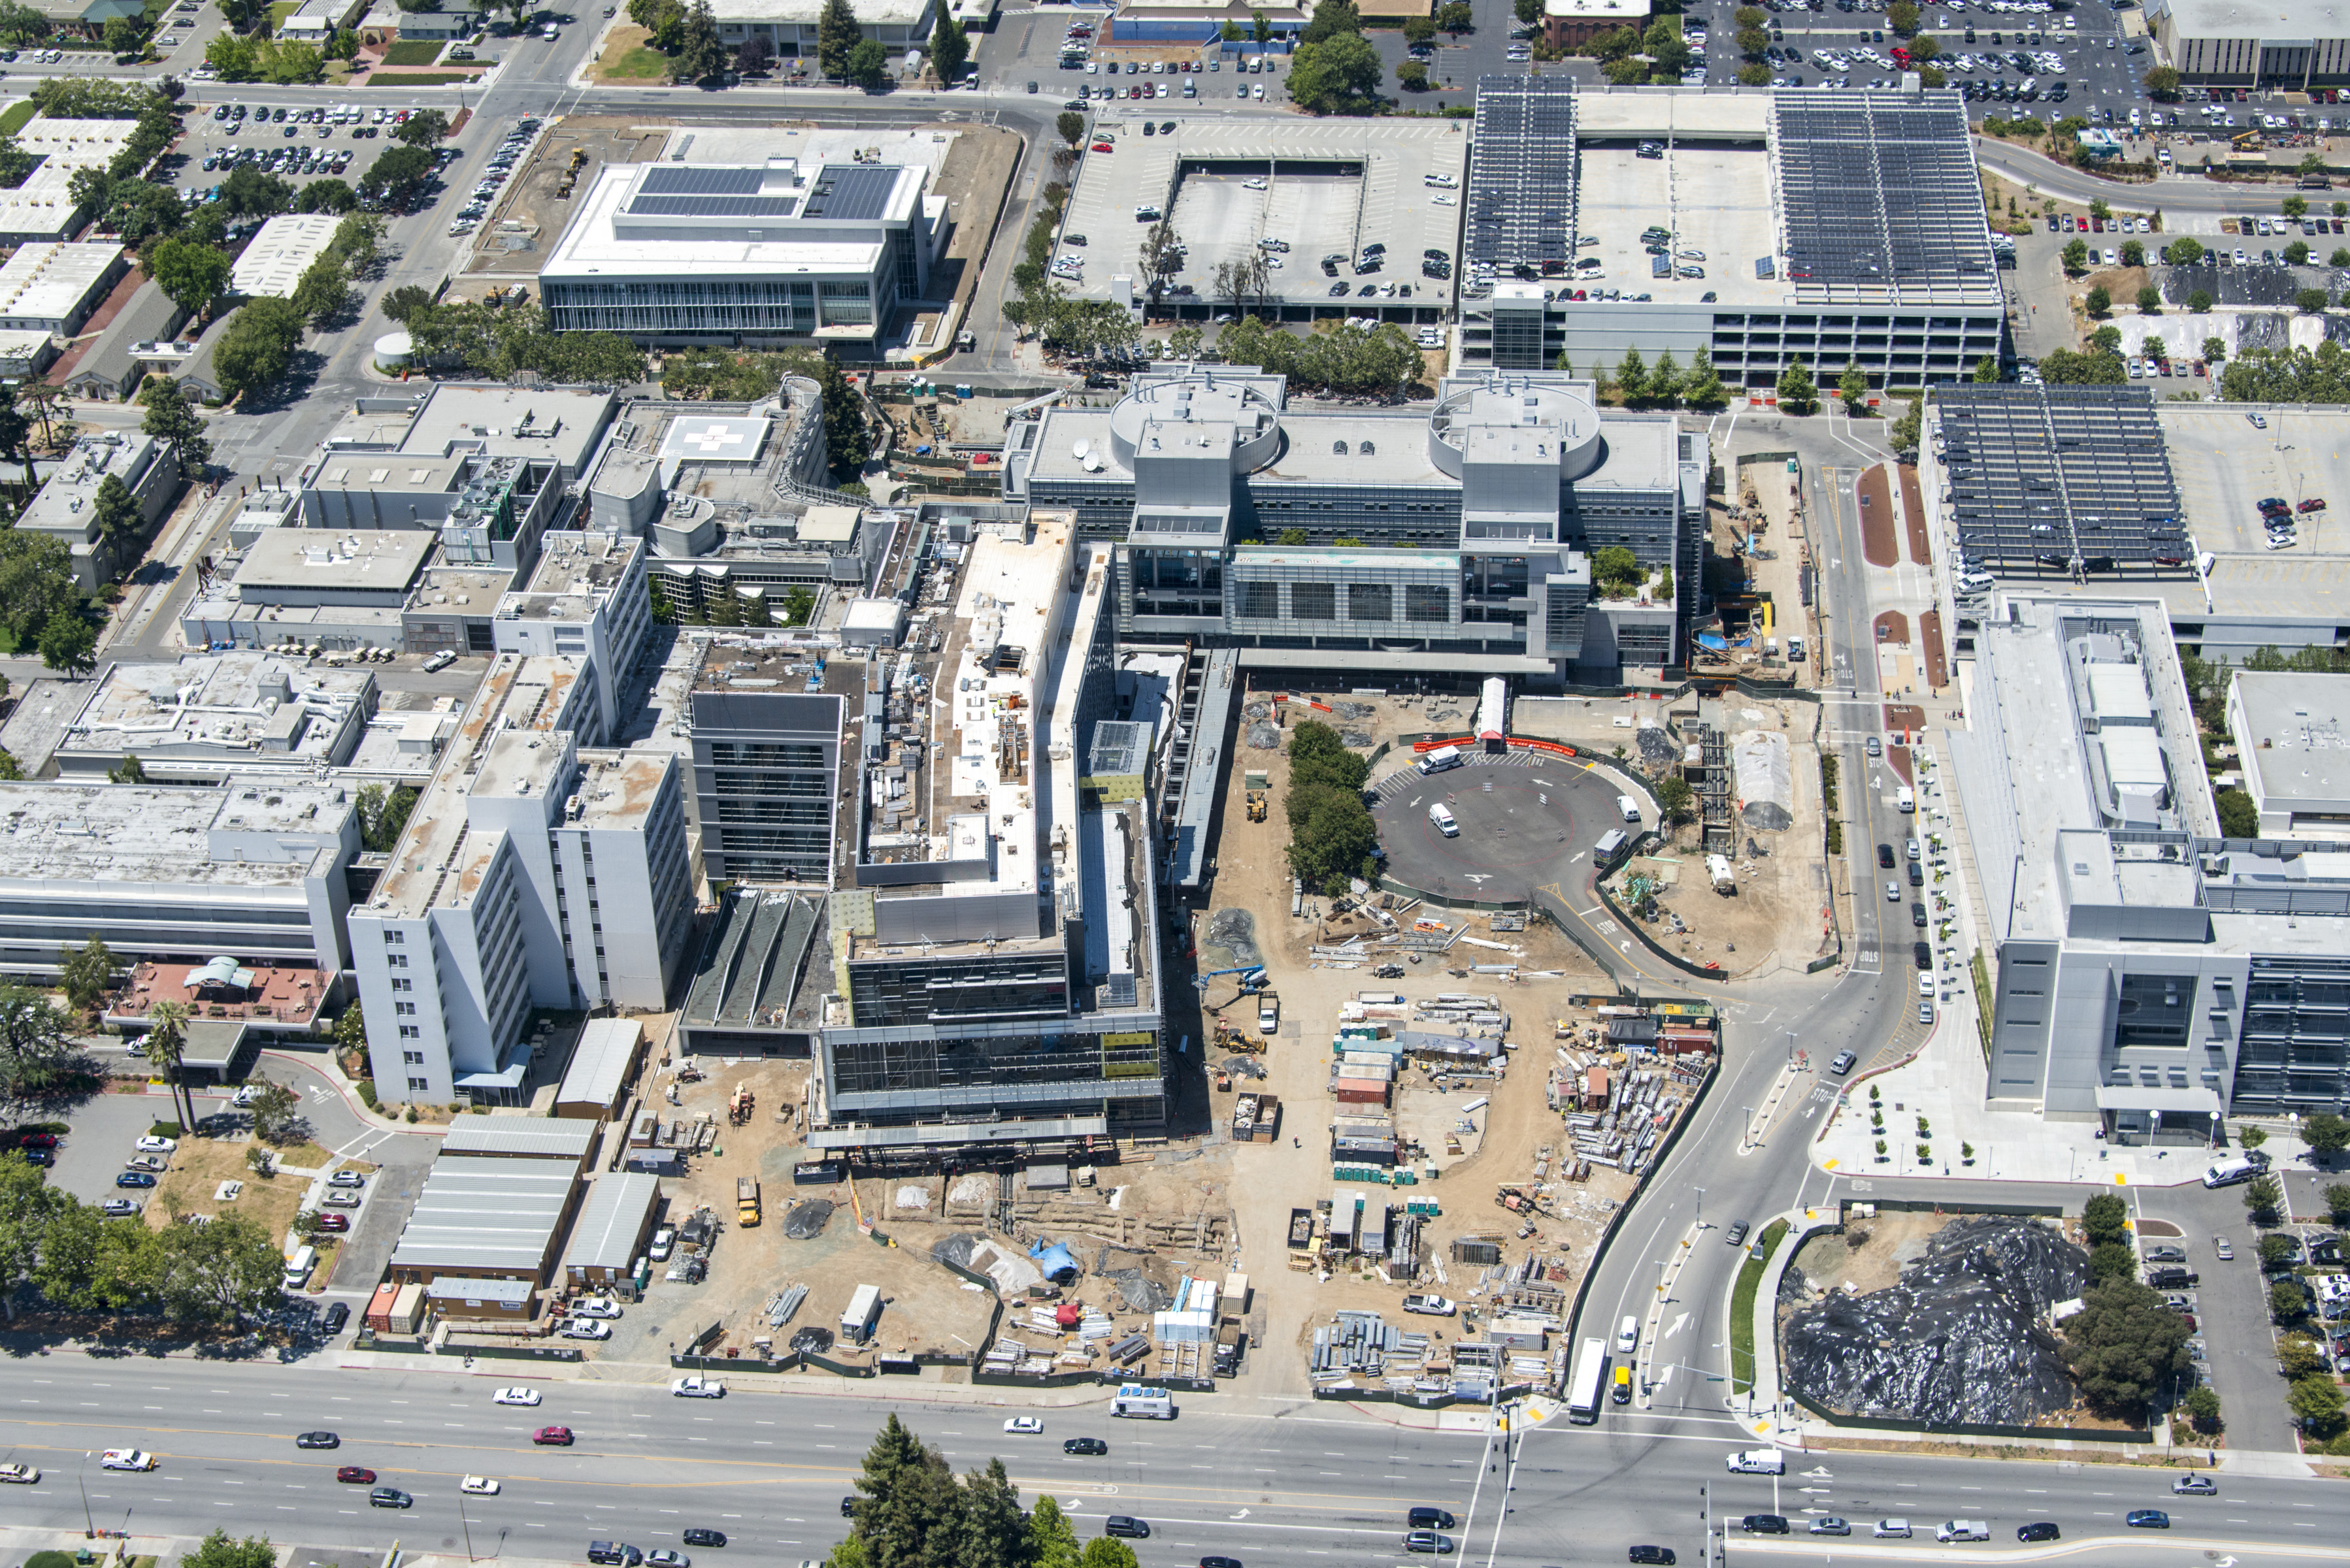 Santa Clara Valley Medical Center - 111th Aerial & Architectural Photography